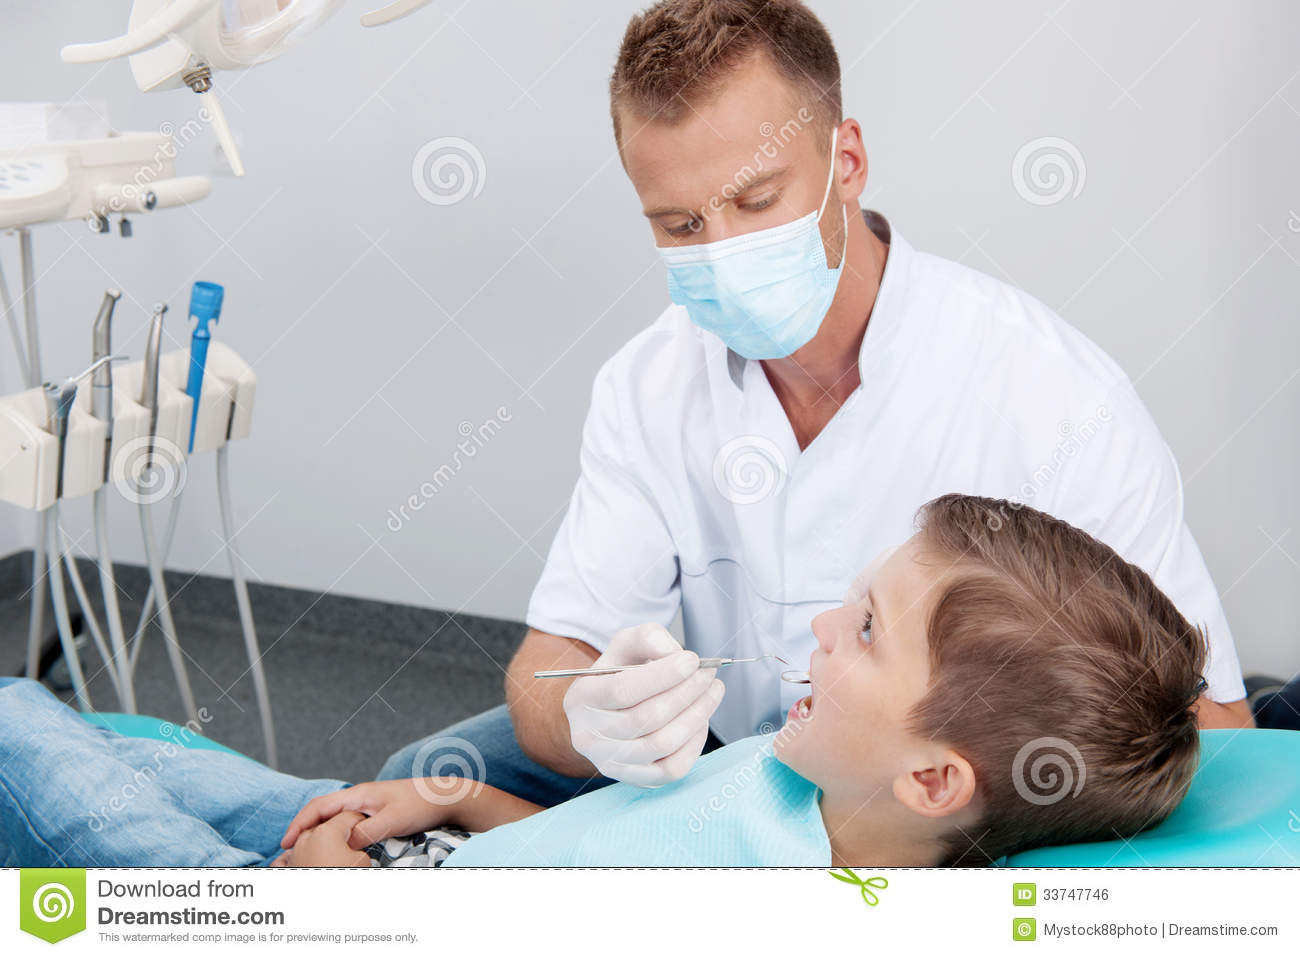 Little Patient At Dentist Office  Stock Photo - Image of